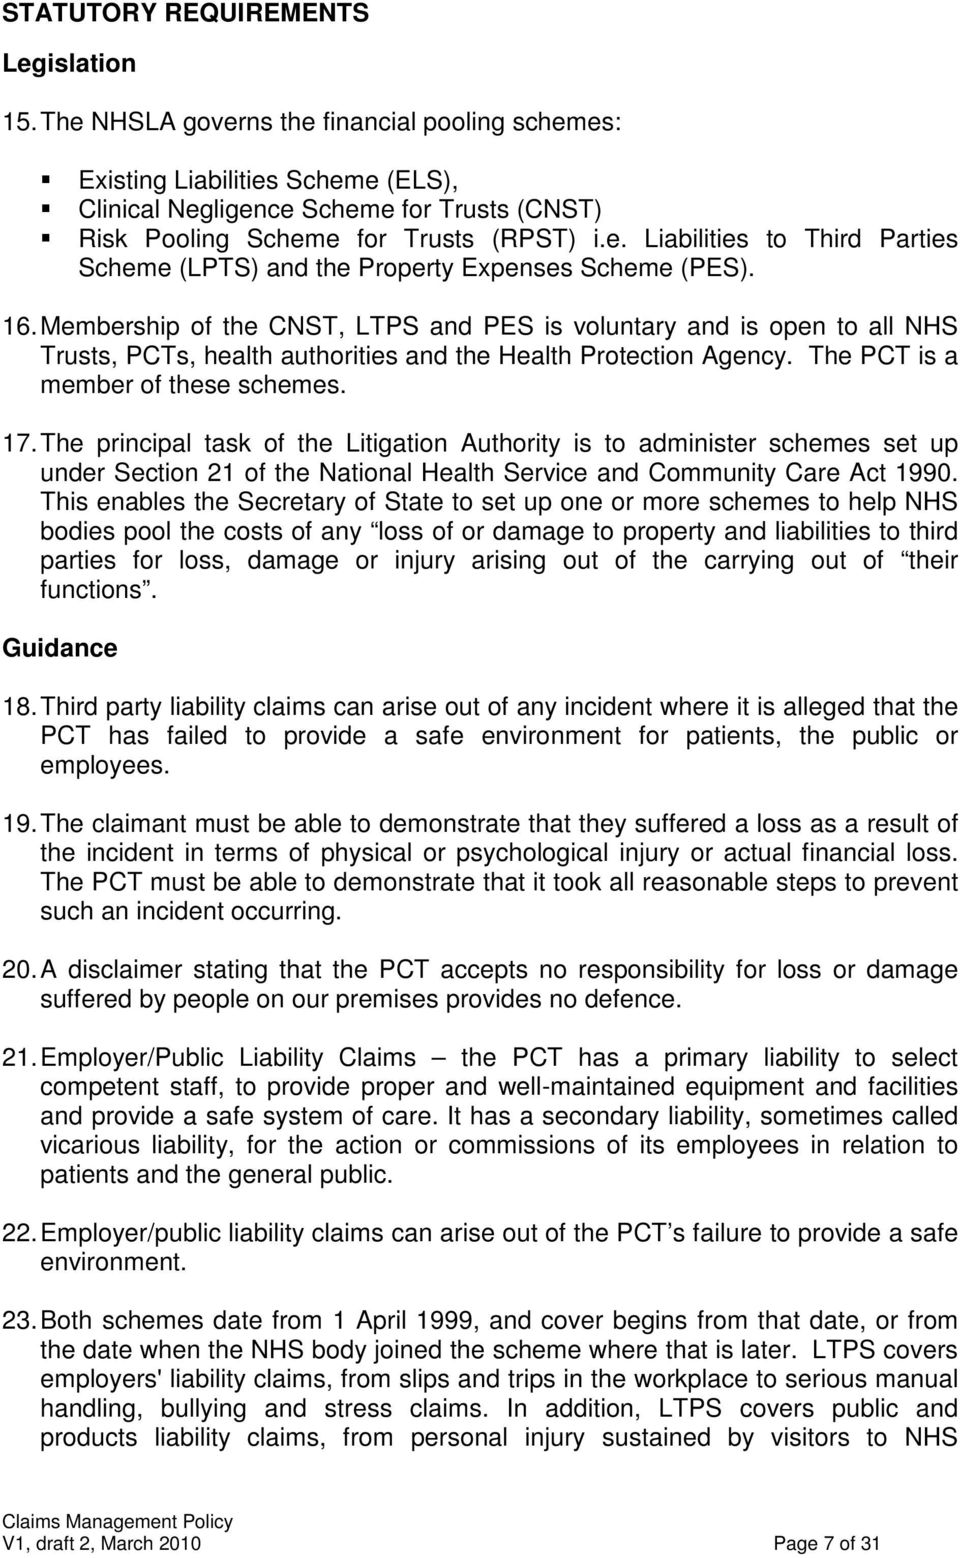 16. Membership of the CNST, LTPS and PES is voluntary and is open to all NHS Trusts, PCTs, health authorities and the Health Protection Agency. The PCT is a member of these schemes. 17.